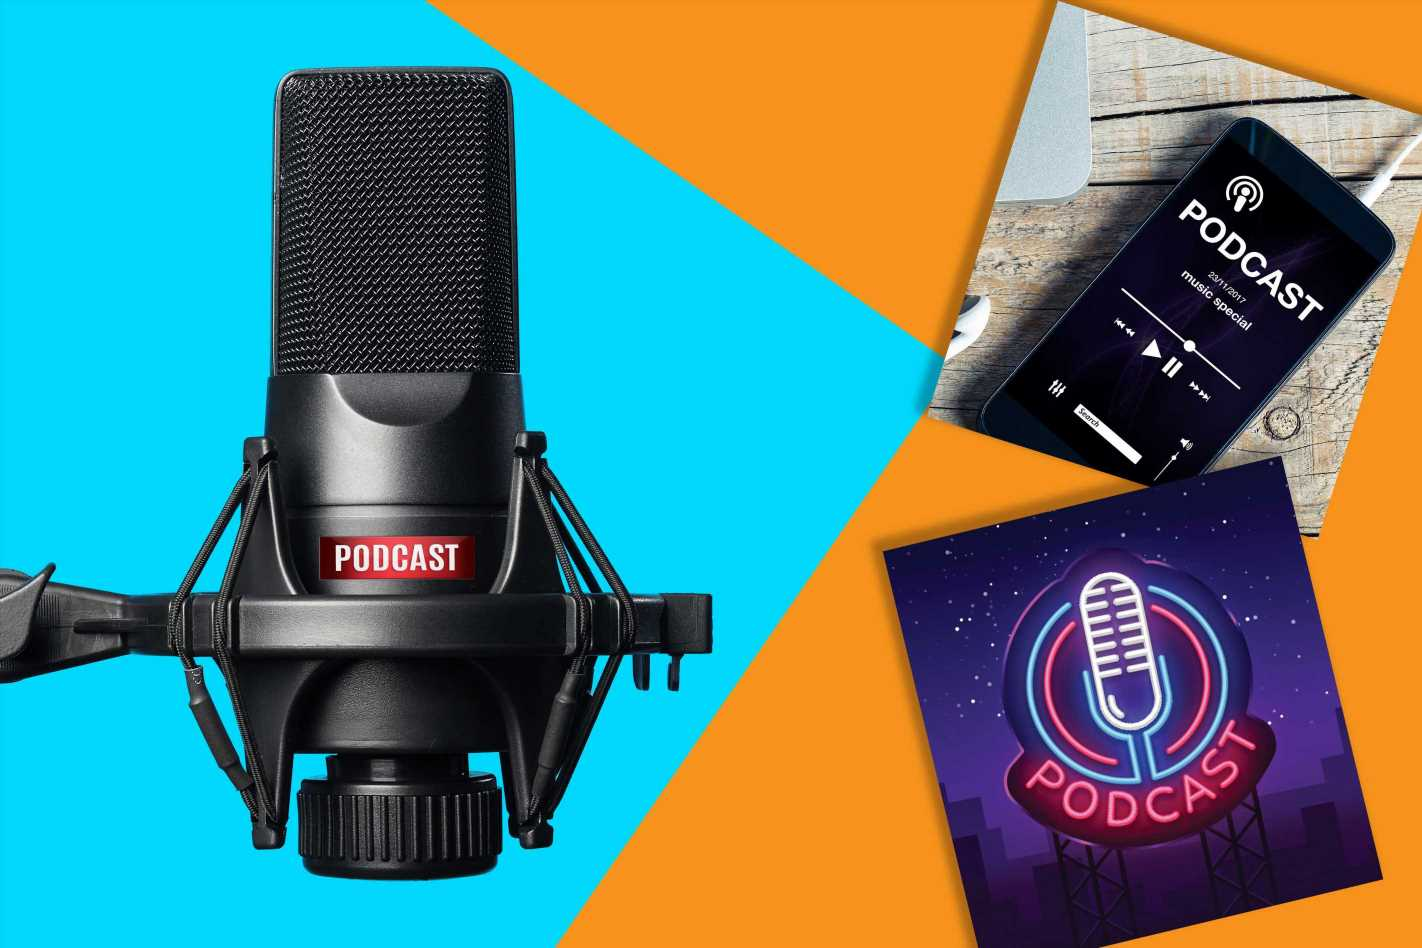 Learn how to start a podcast from NPR producers for under $20